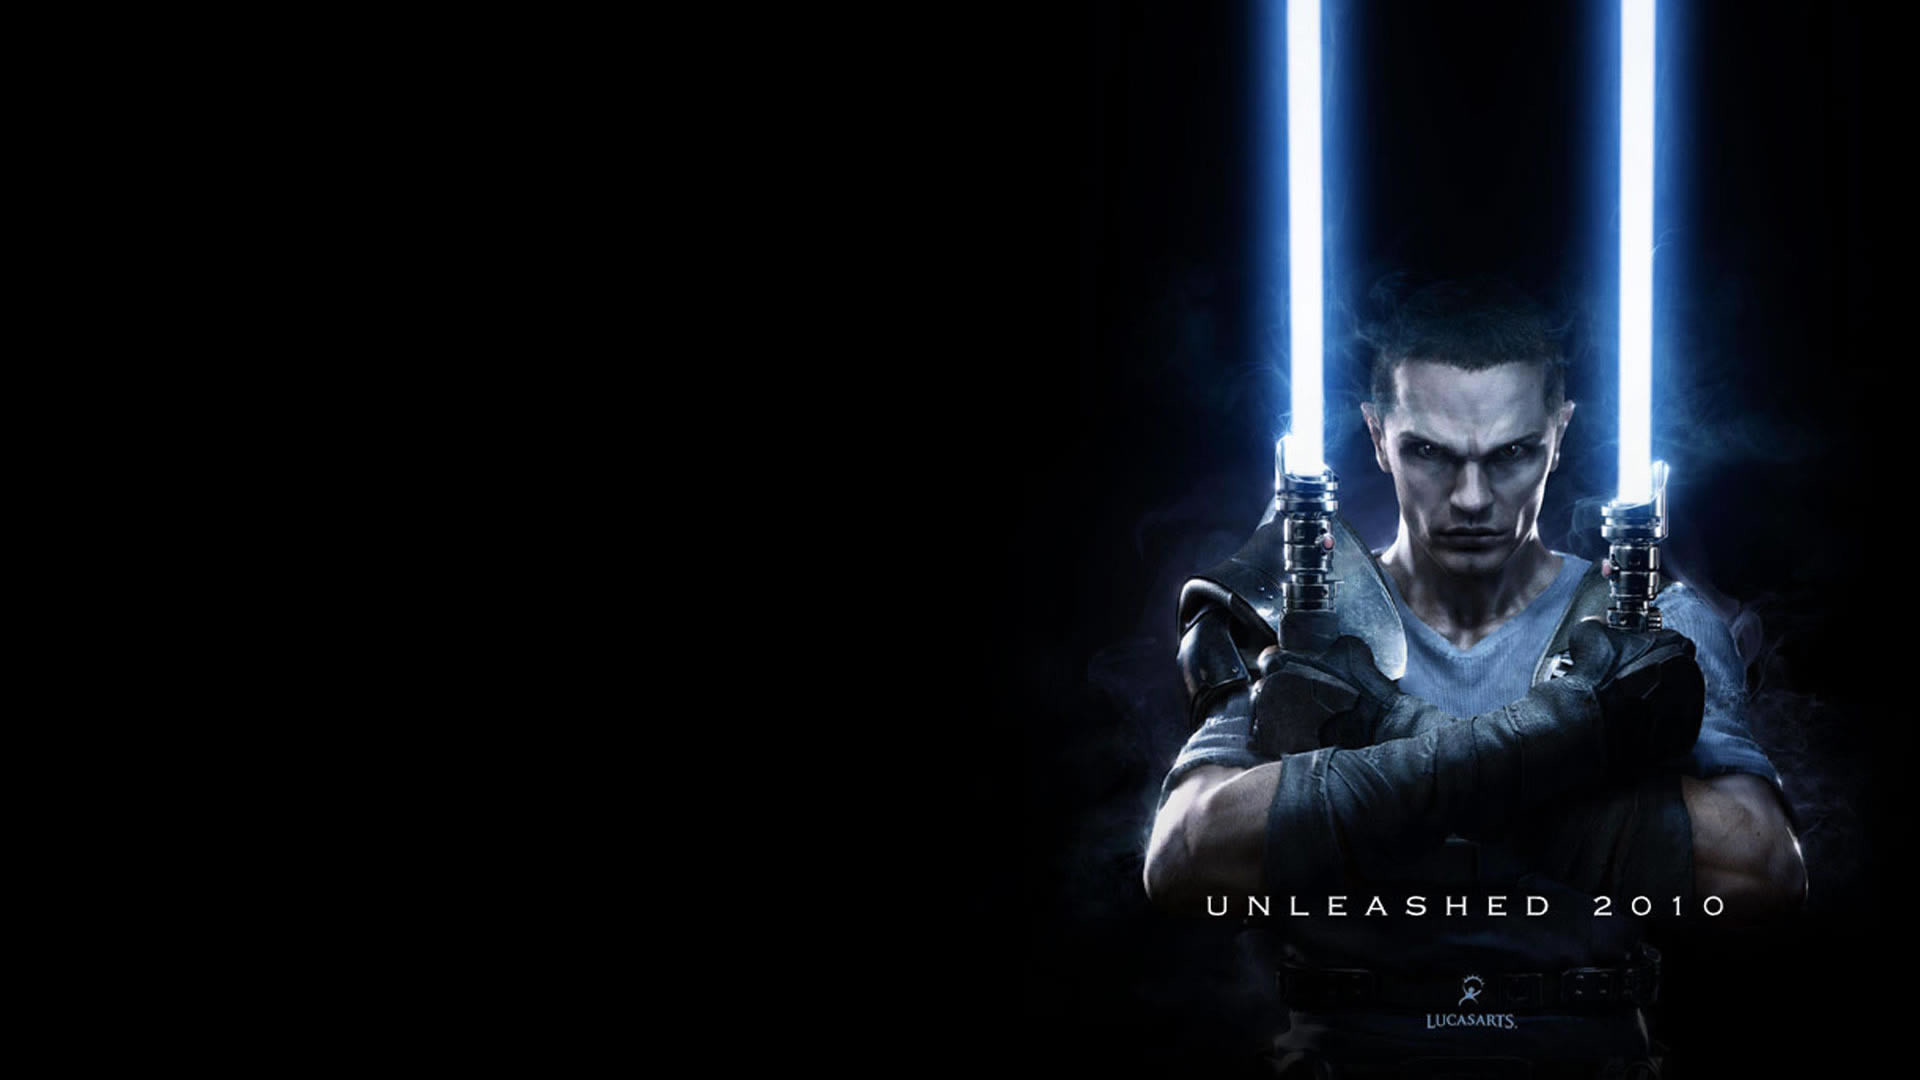 1920x1080 wallpaper.wiki-Epic-star-wars-wallpapers-hd-download-